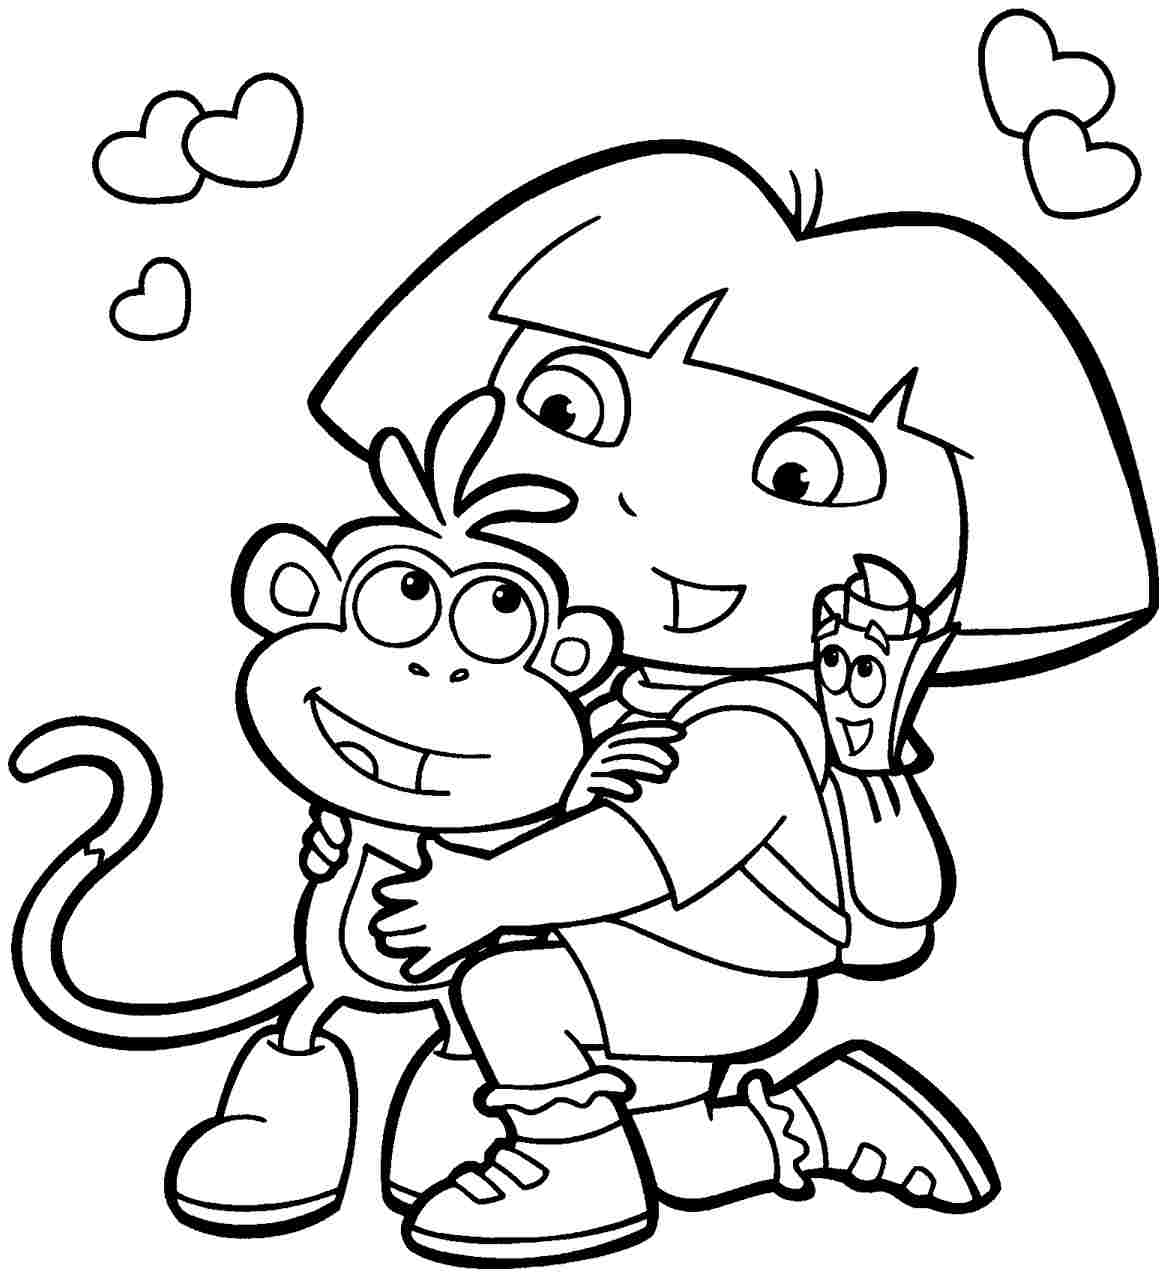 Coloring Pages Cartoon Coloring Pages Free free cartoon coloring pages futpal com futpal